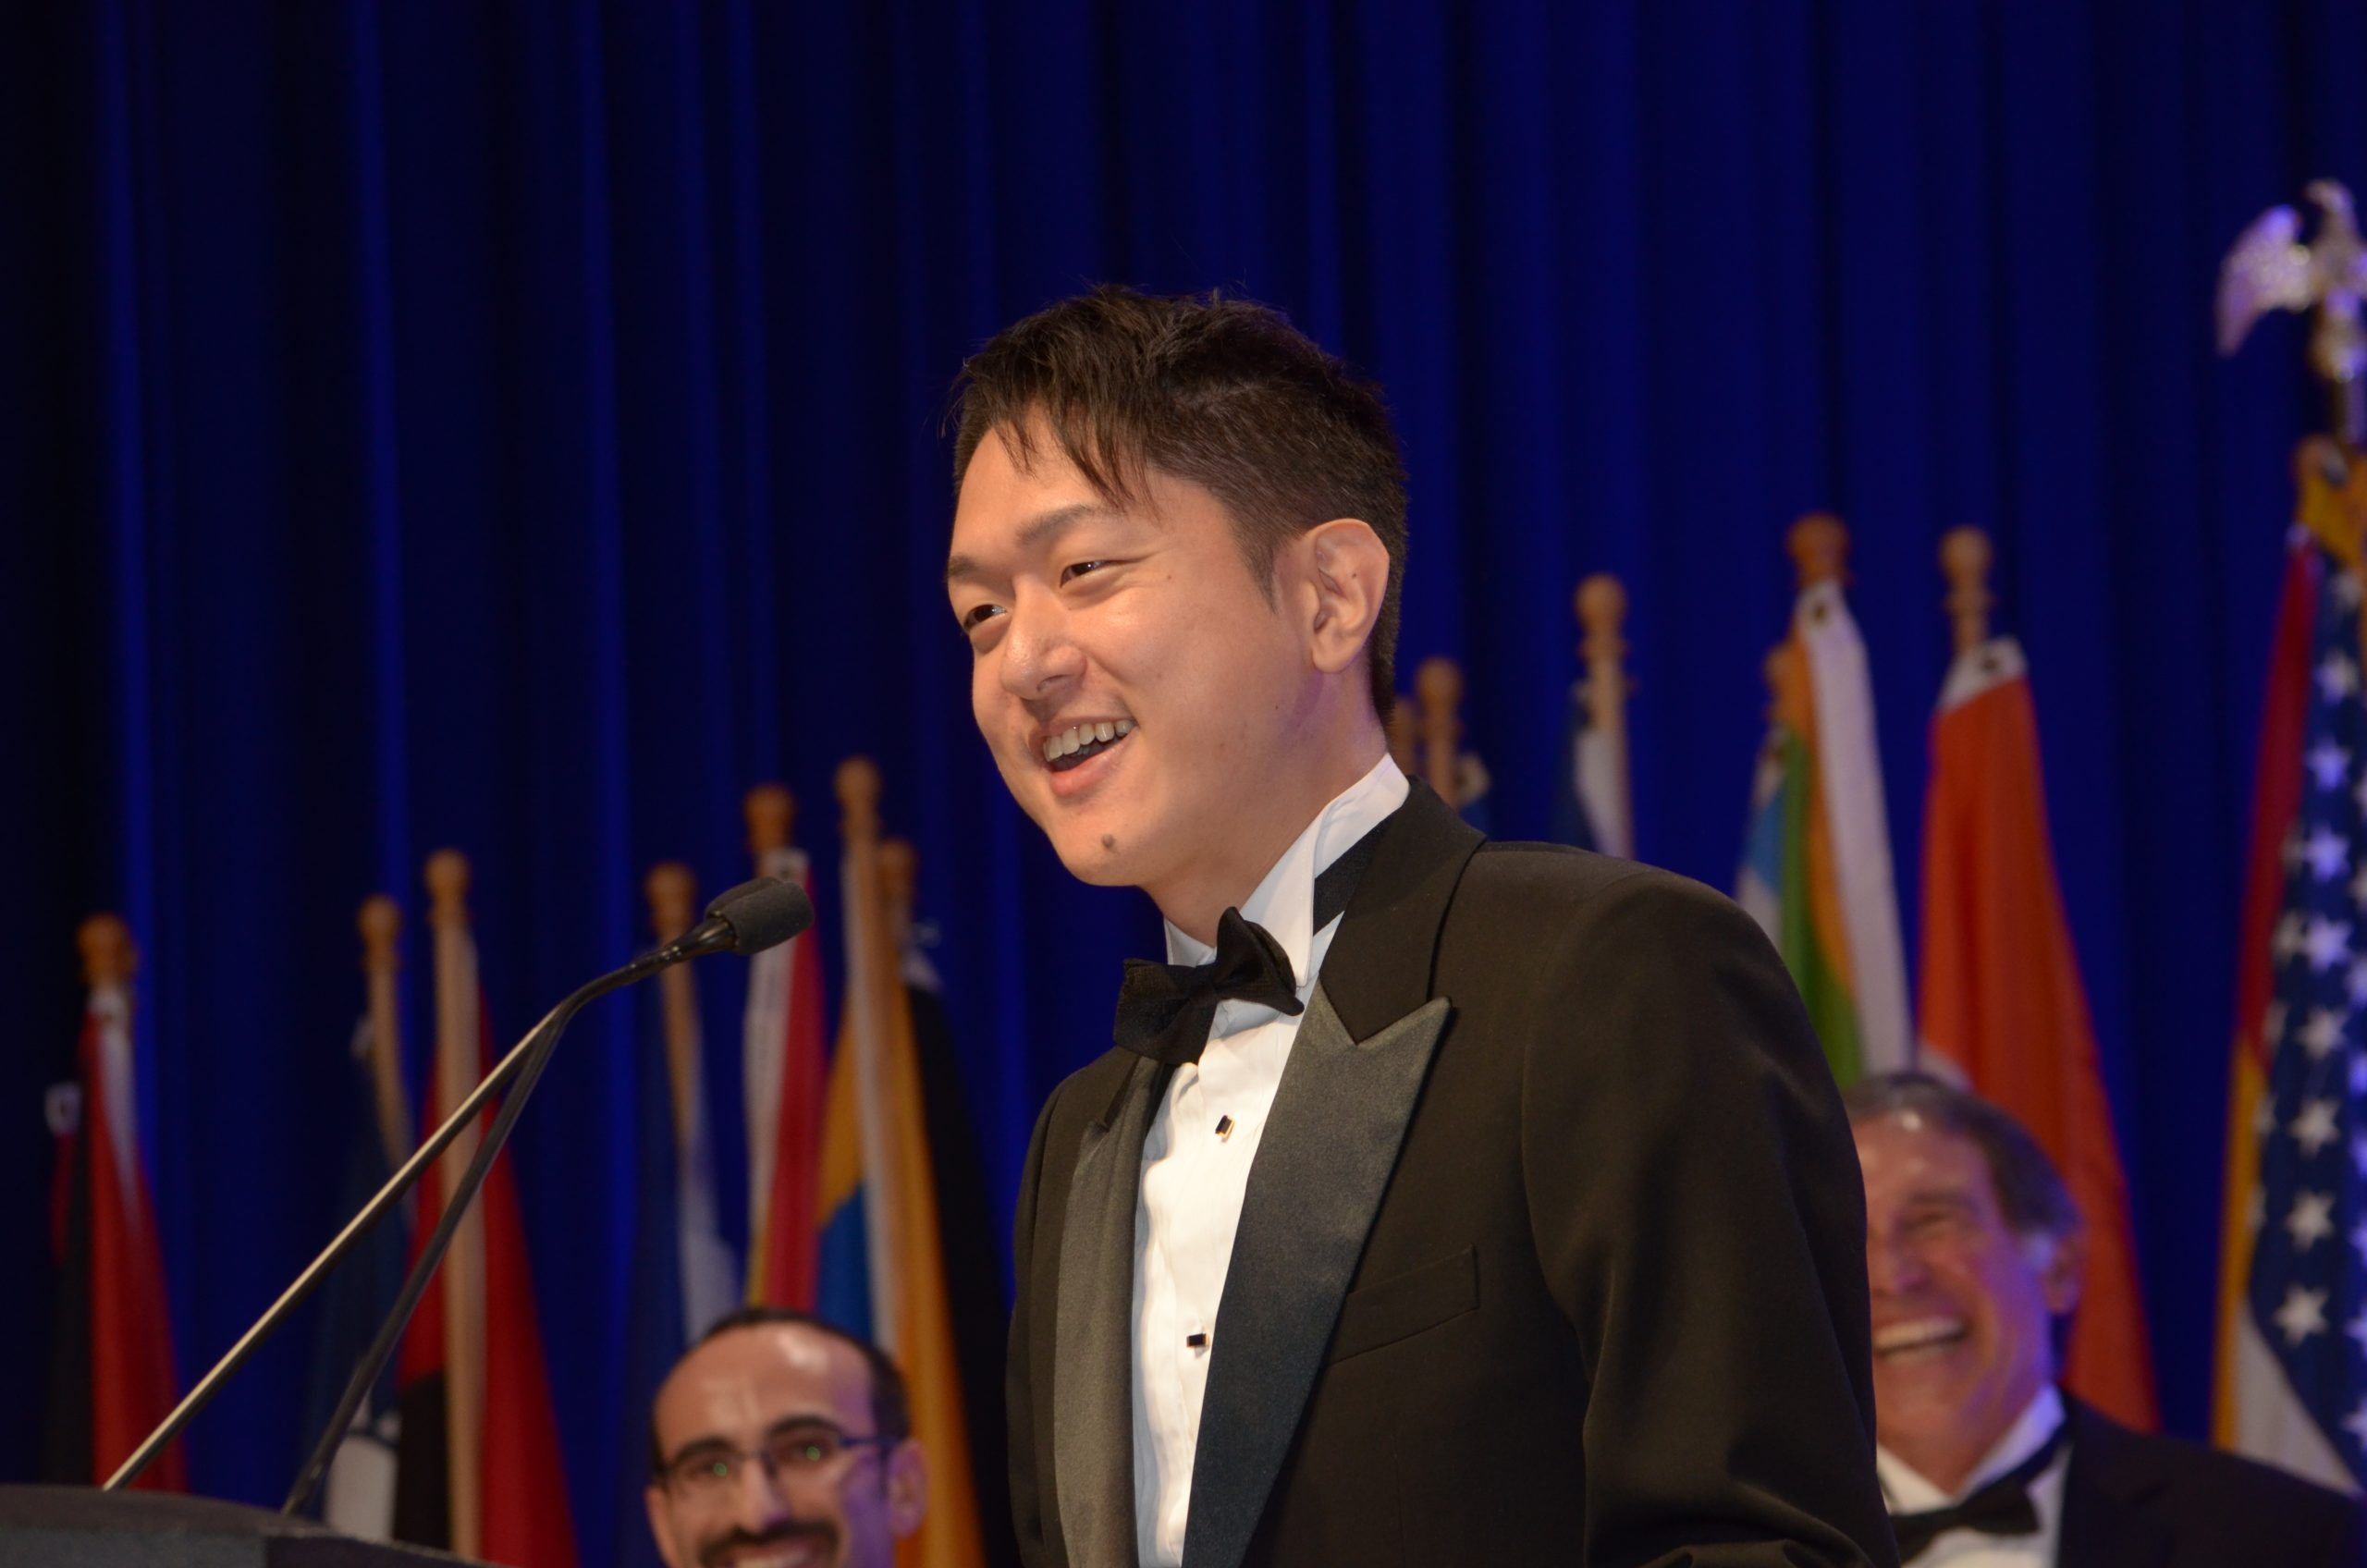 (Award) 2018 International Young Energy Professional of the Year Award